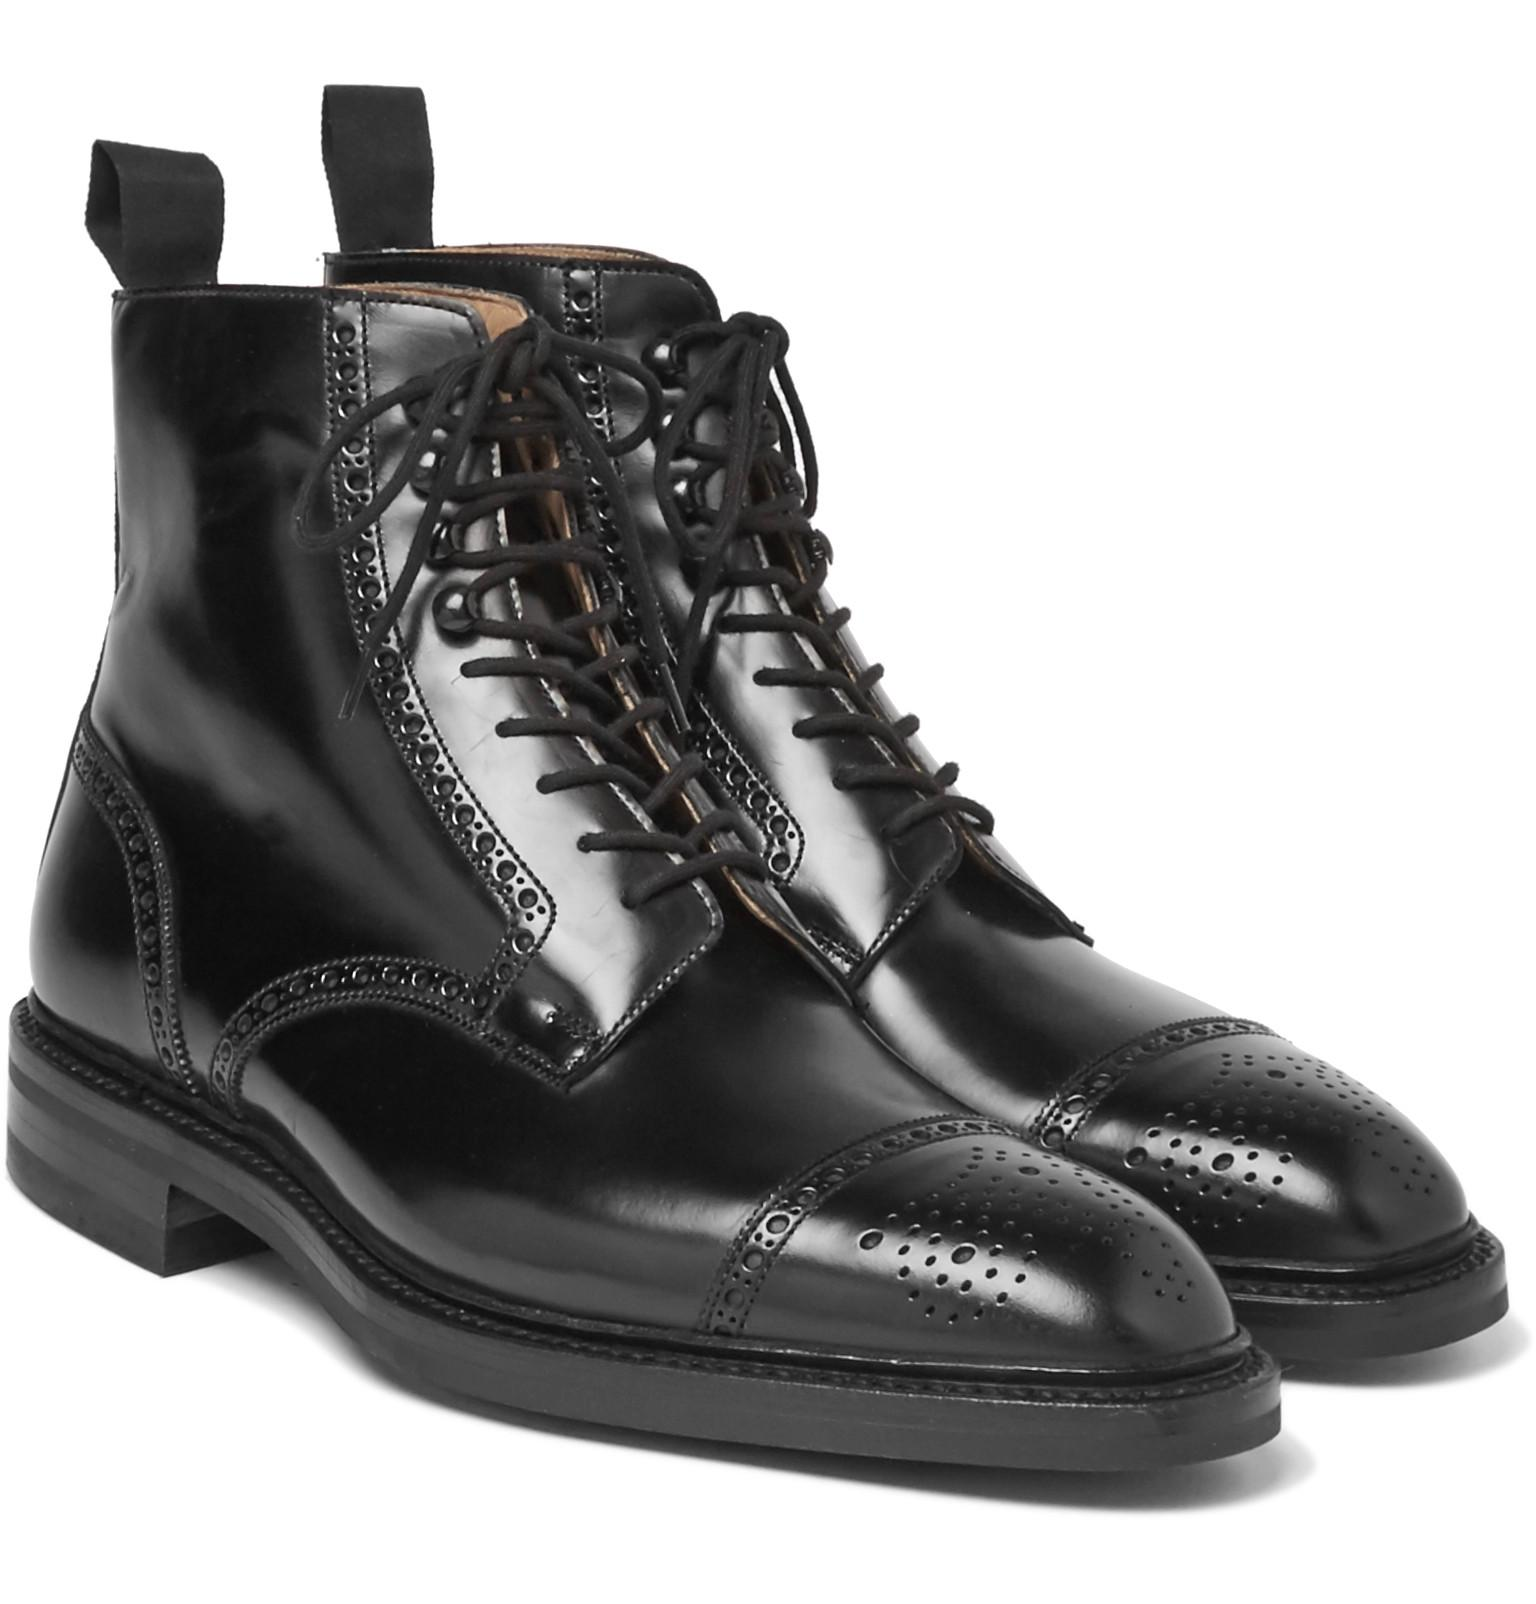 Le Meilleur George Cleverley Bryan Leather Brogue Boots In Black For Ce Mois Ci